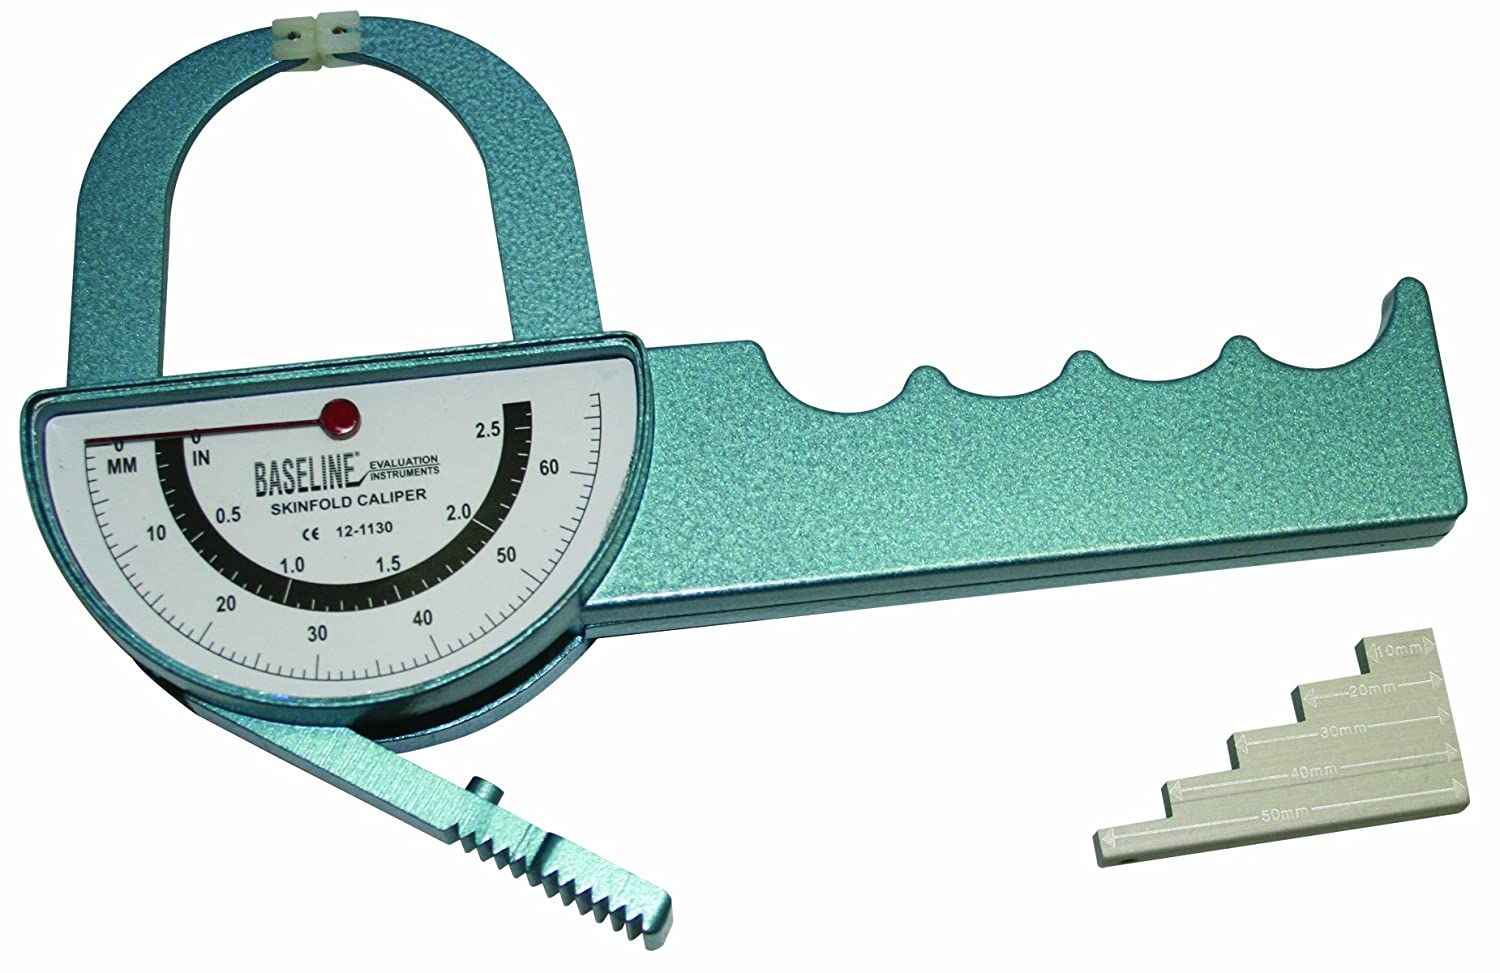 Amazon on baseline - Amazon Com Baseline 12 1130 Medical Skinfold Caliper Deluxe Dual Sided Model Industrial Scientific